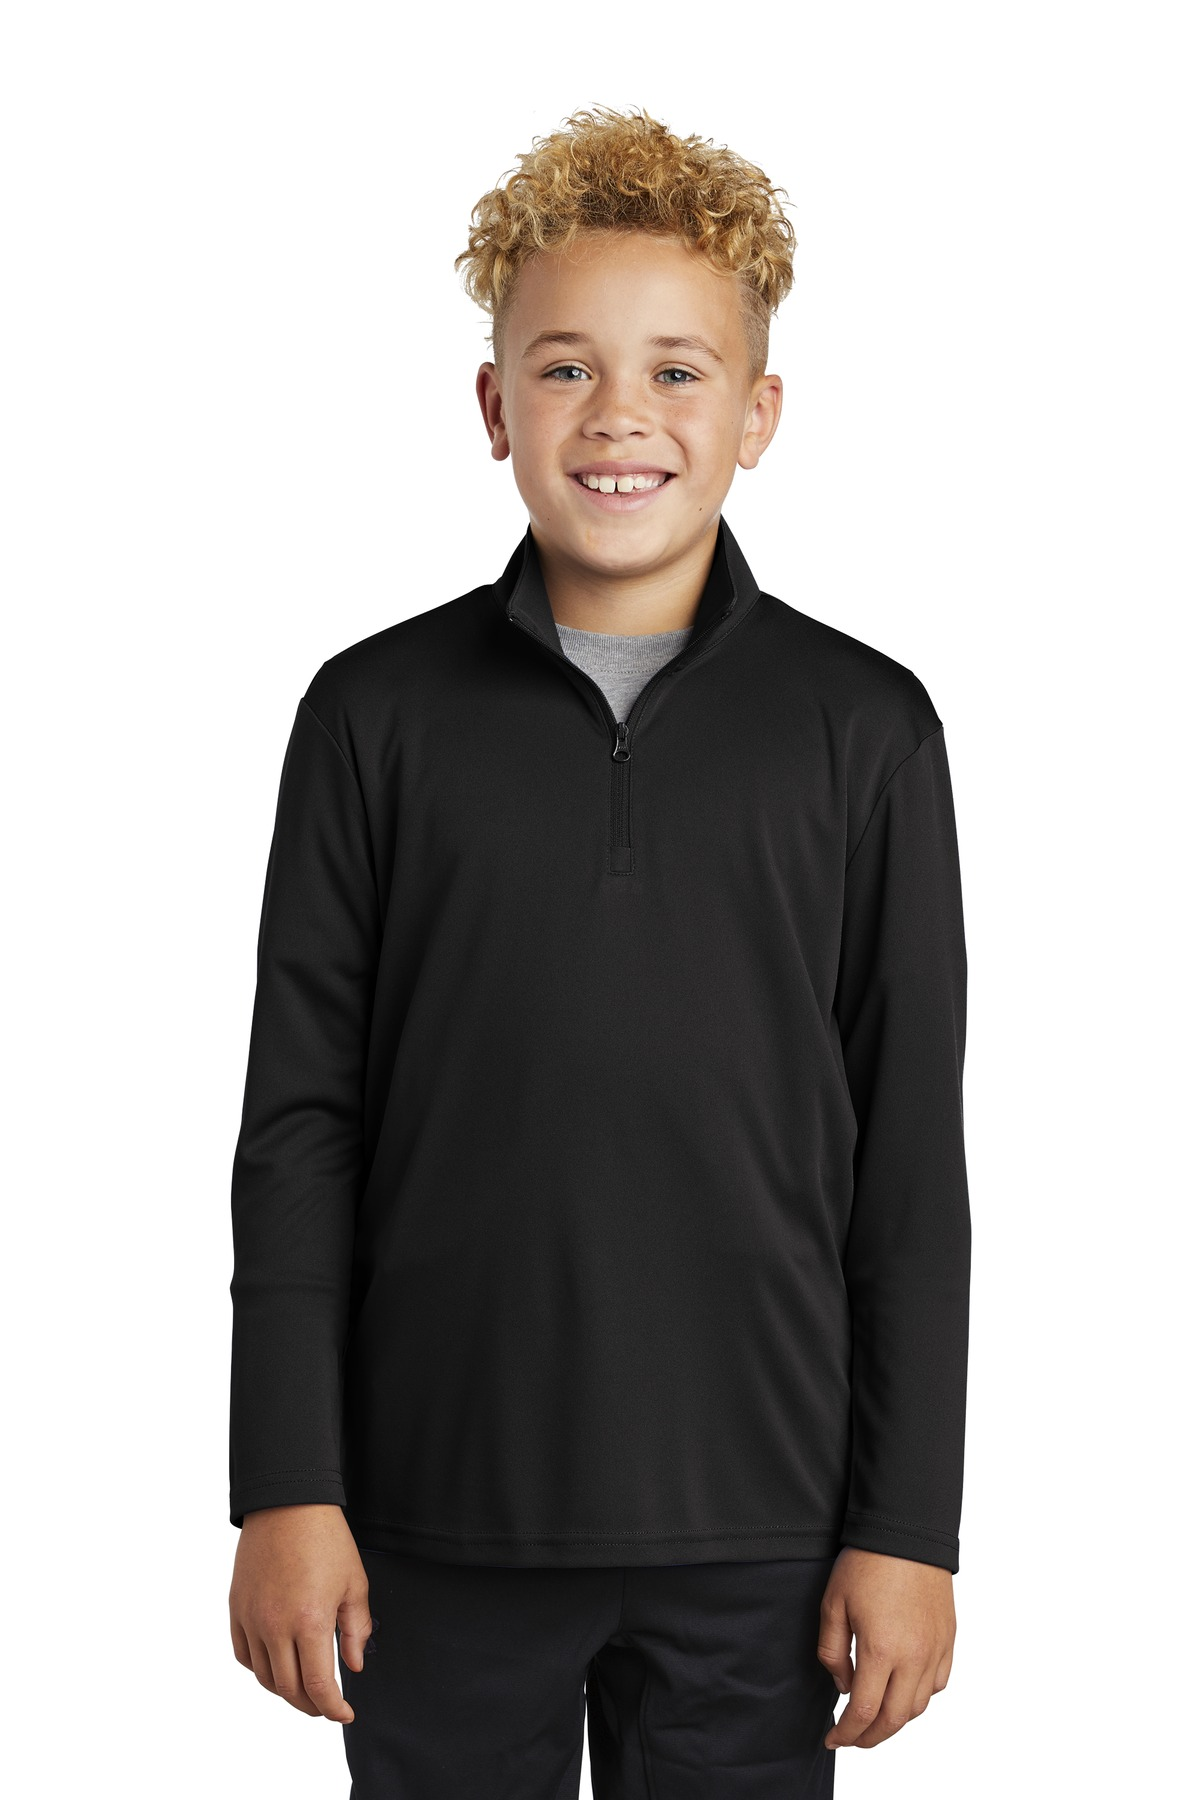 Sport-Tek  ®  Youth PosiCharge  ®  Competitor  ™  1/4-Zip Pullover. YST357 - Black